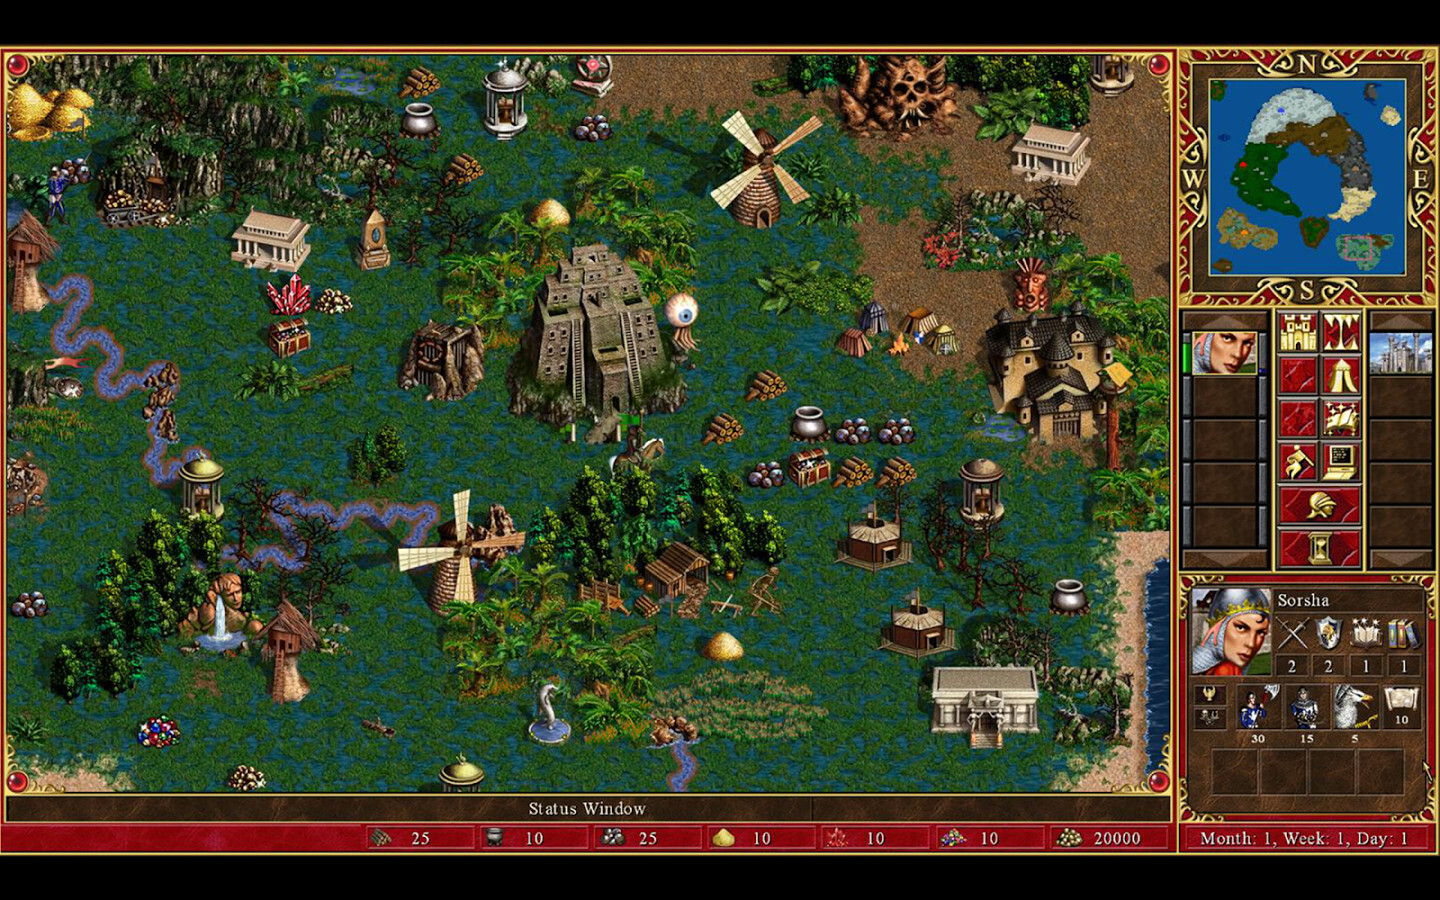 Heroes of might and magic 5 hammers of fate skill tree